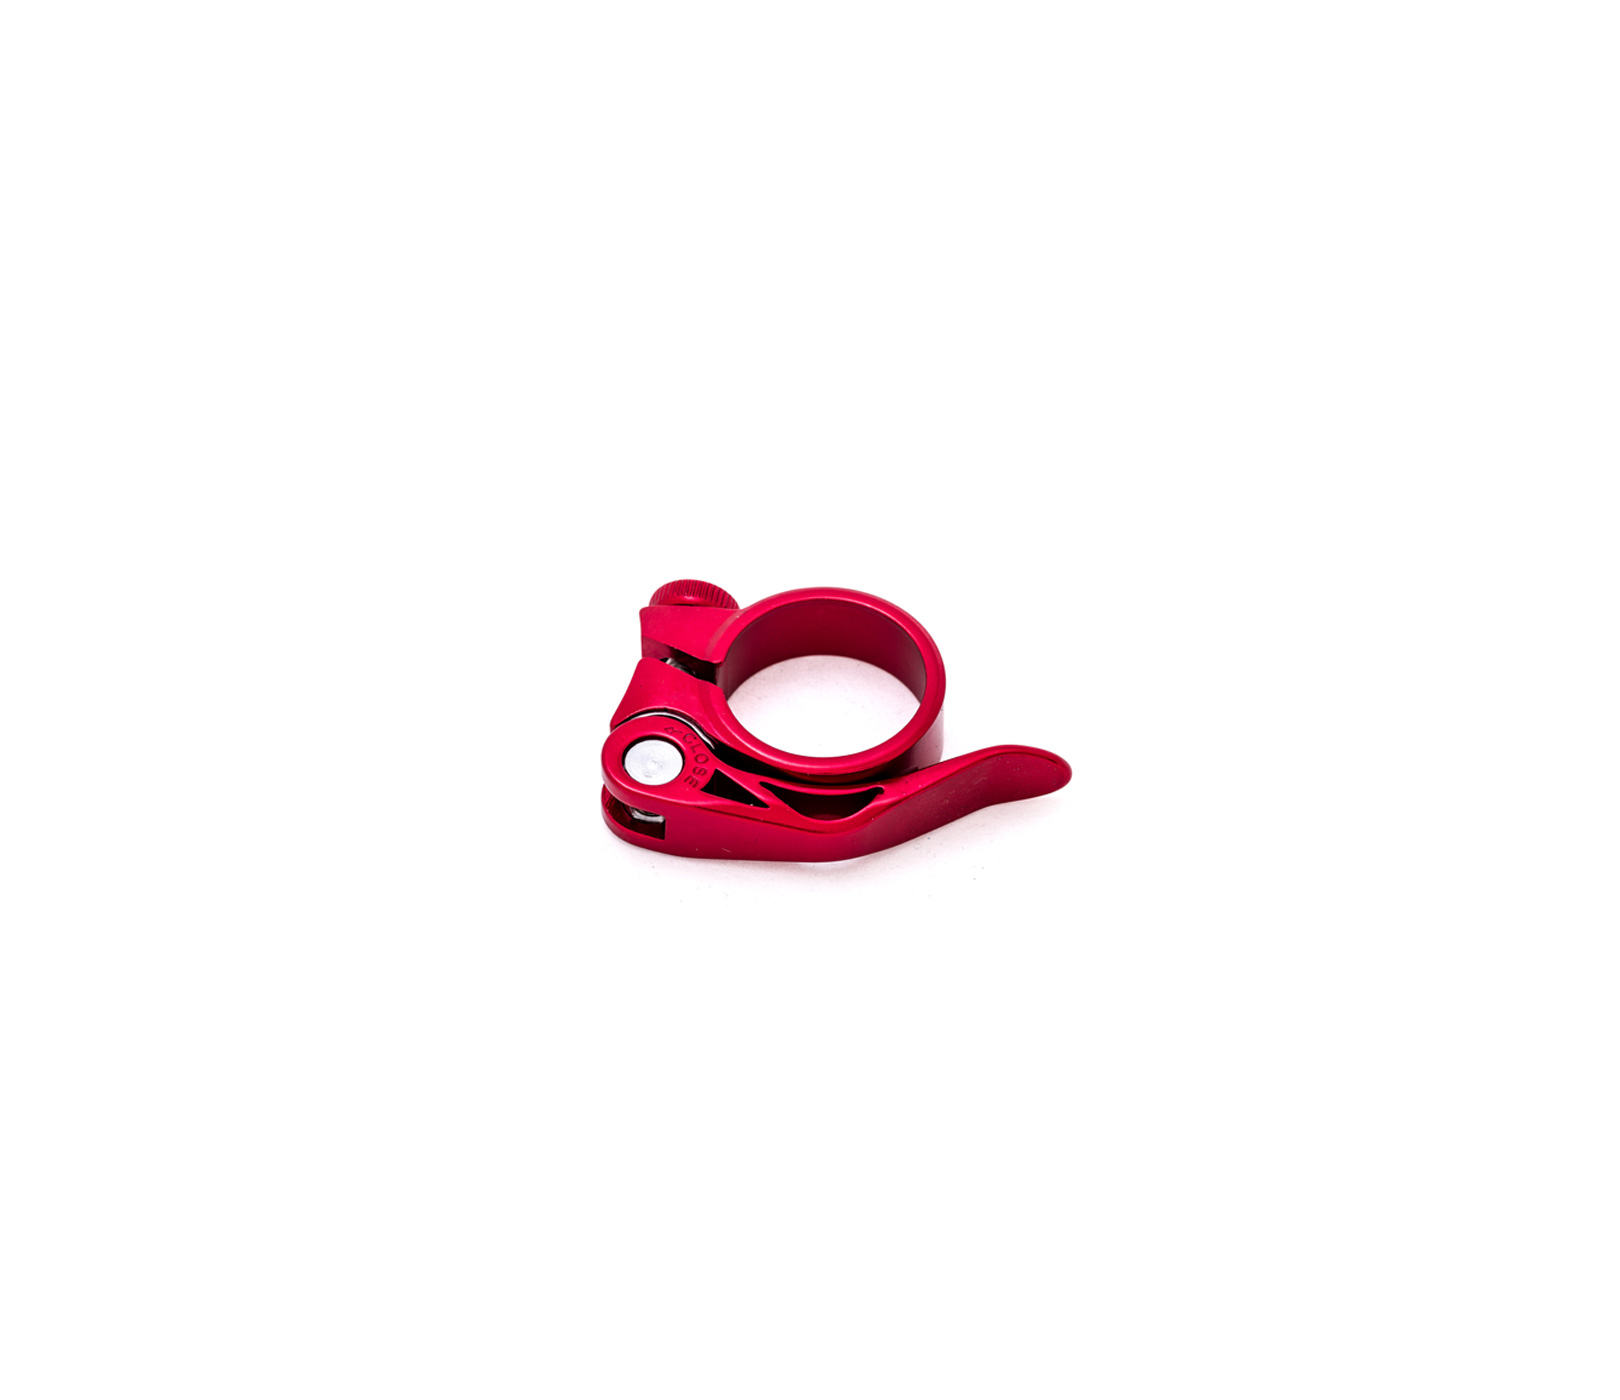 349 RED ALUMINUM SEAT POST CLAMP